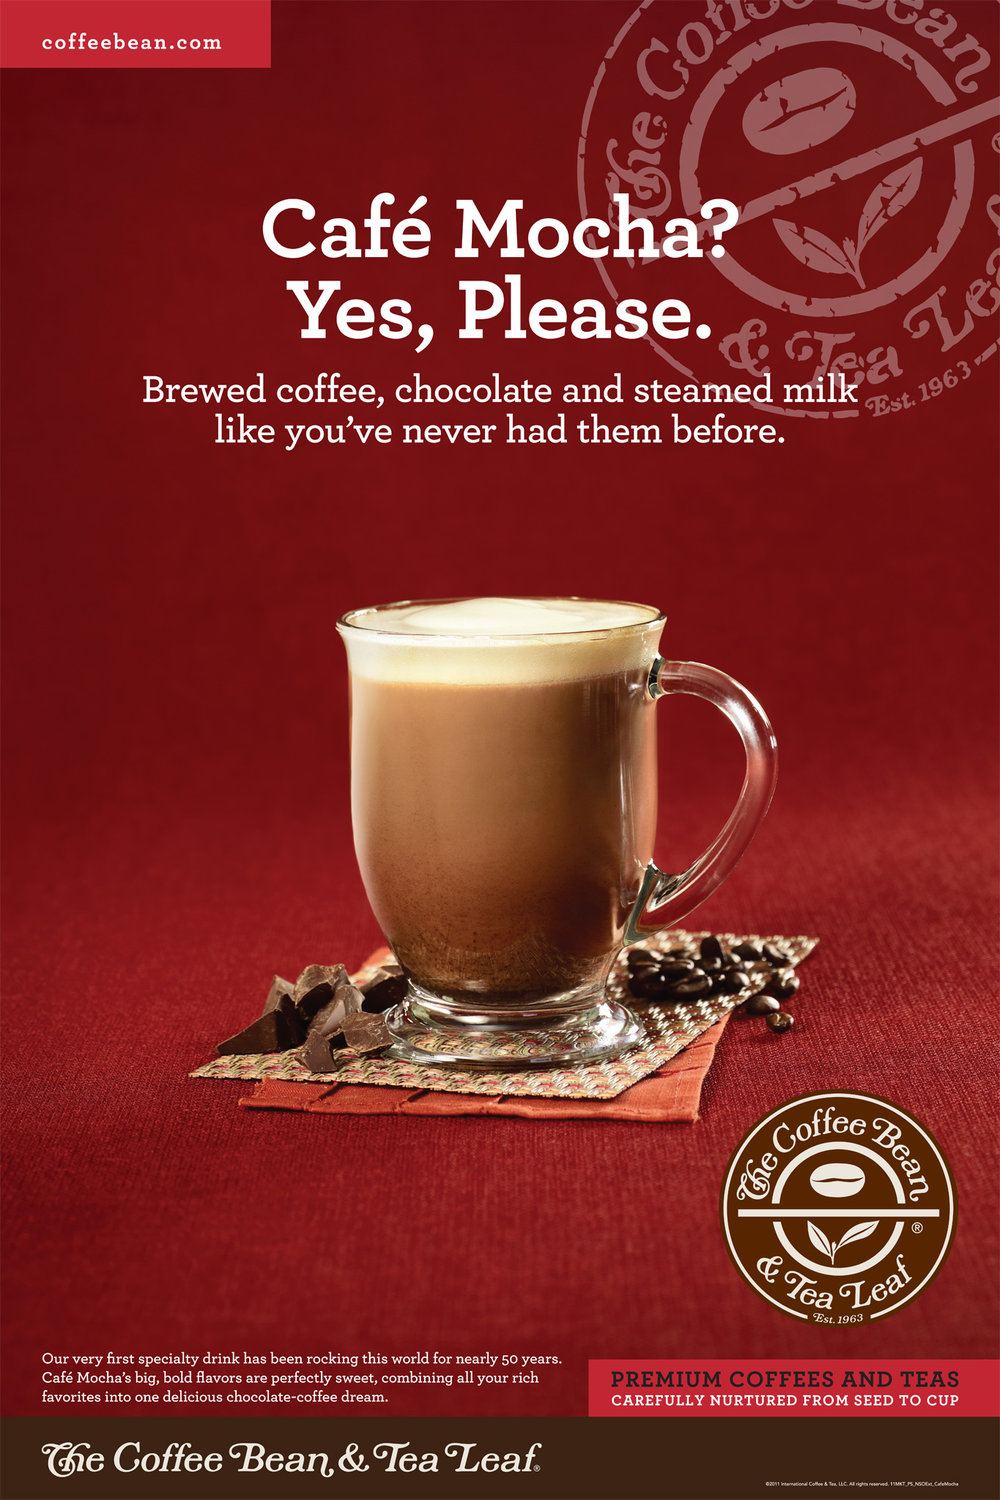 coffee bean and tea leaf fall cafe mocha in layout.jpg